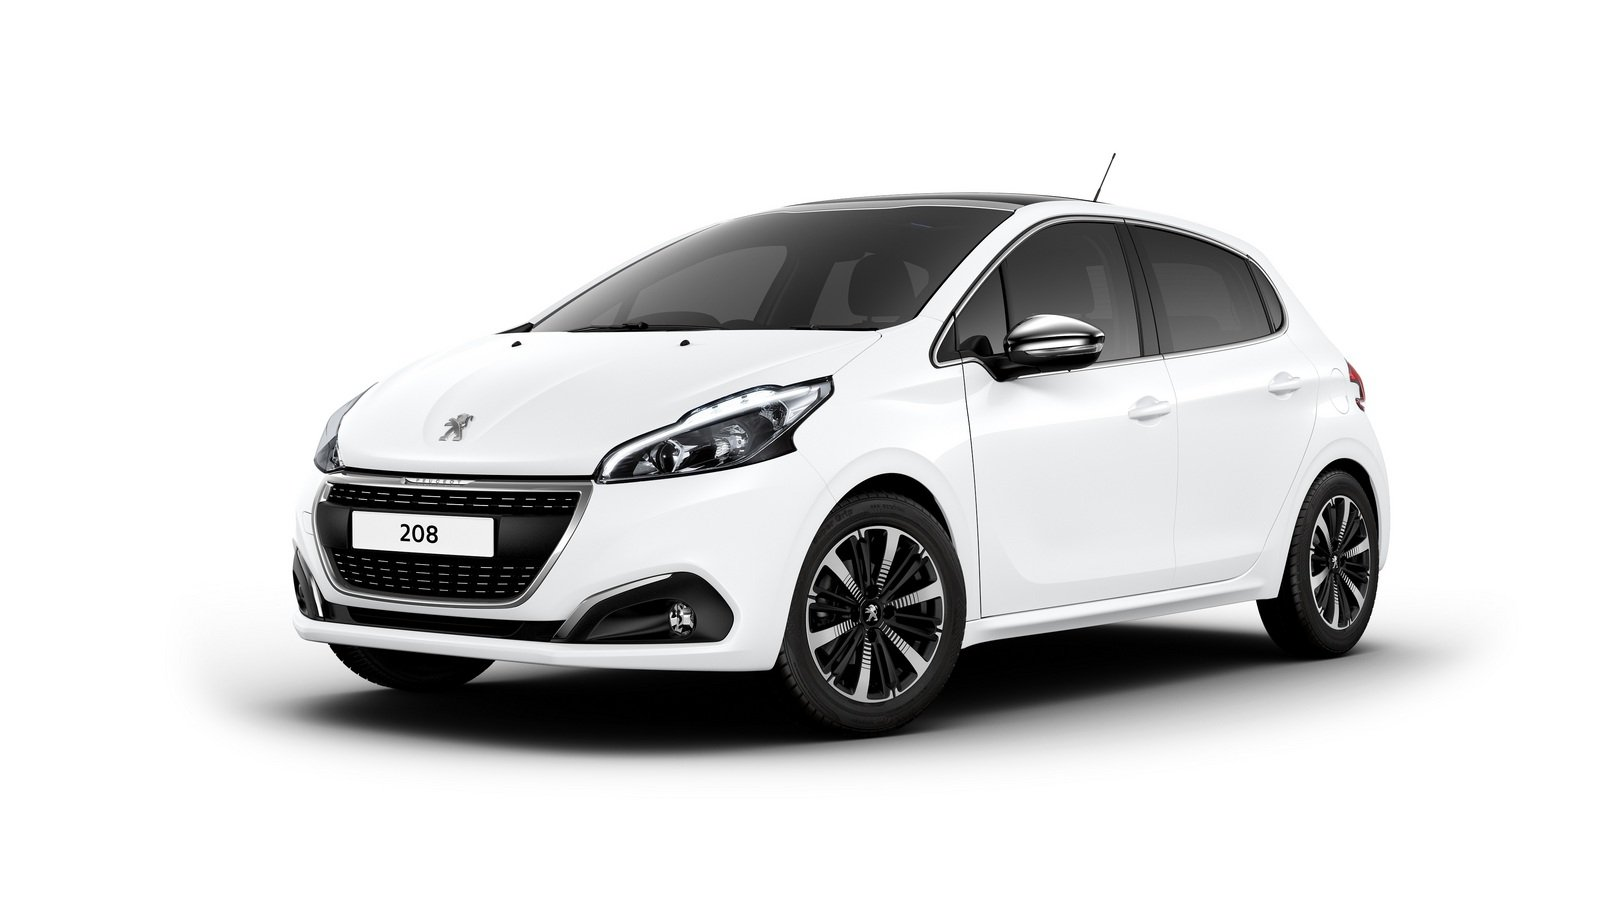 2017 peugeot 208 allure premium picture 684186 car review top speed. Black Bedroom Furniture Sets. Home Design Ideas